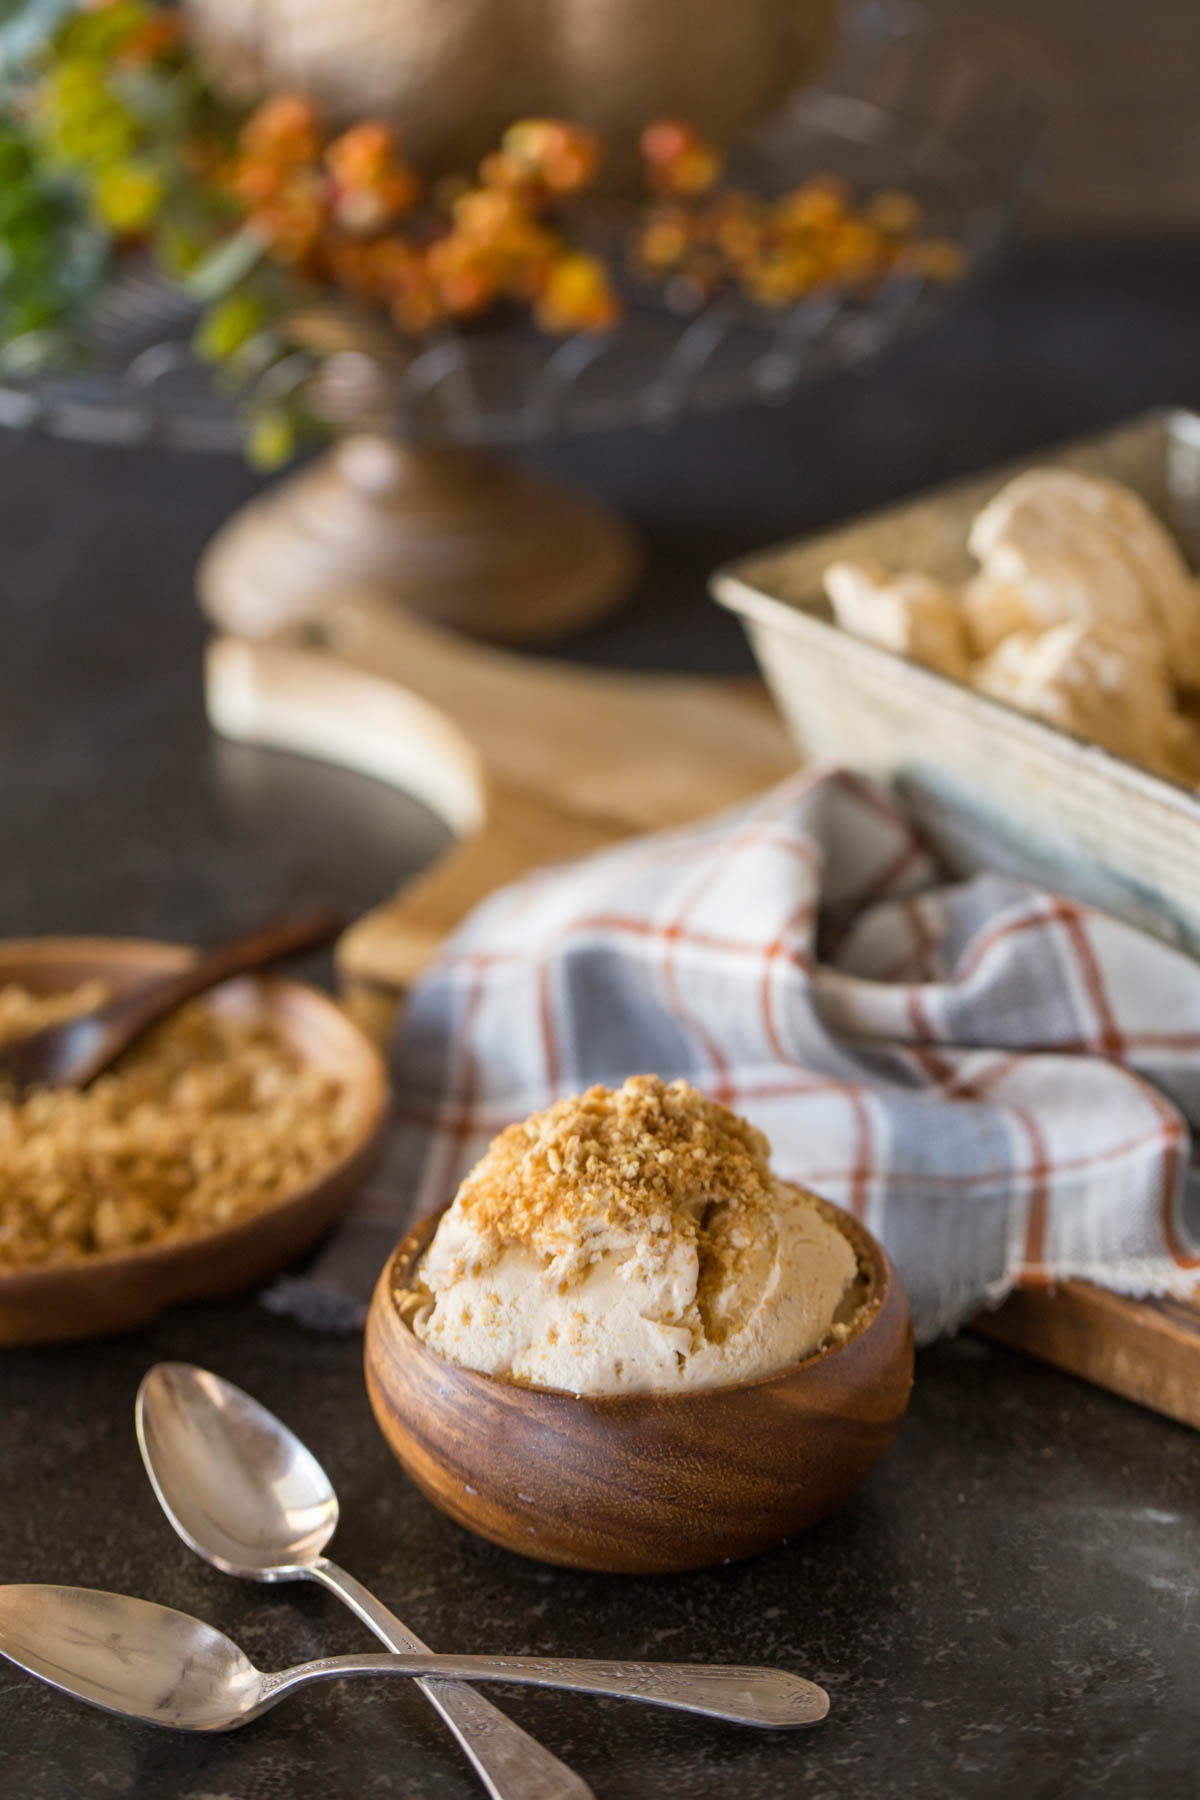 A wood bowl of Homemade Pumpkin Pie Ice Cream topped with crushed graham cracker crumbs, with two spoons sitting next to it, and a wood plate of crushed graham cracker crumbs in the background, along with the loaf pan container of Homemade Pumpkin Pie Ice Cream.